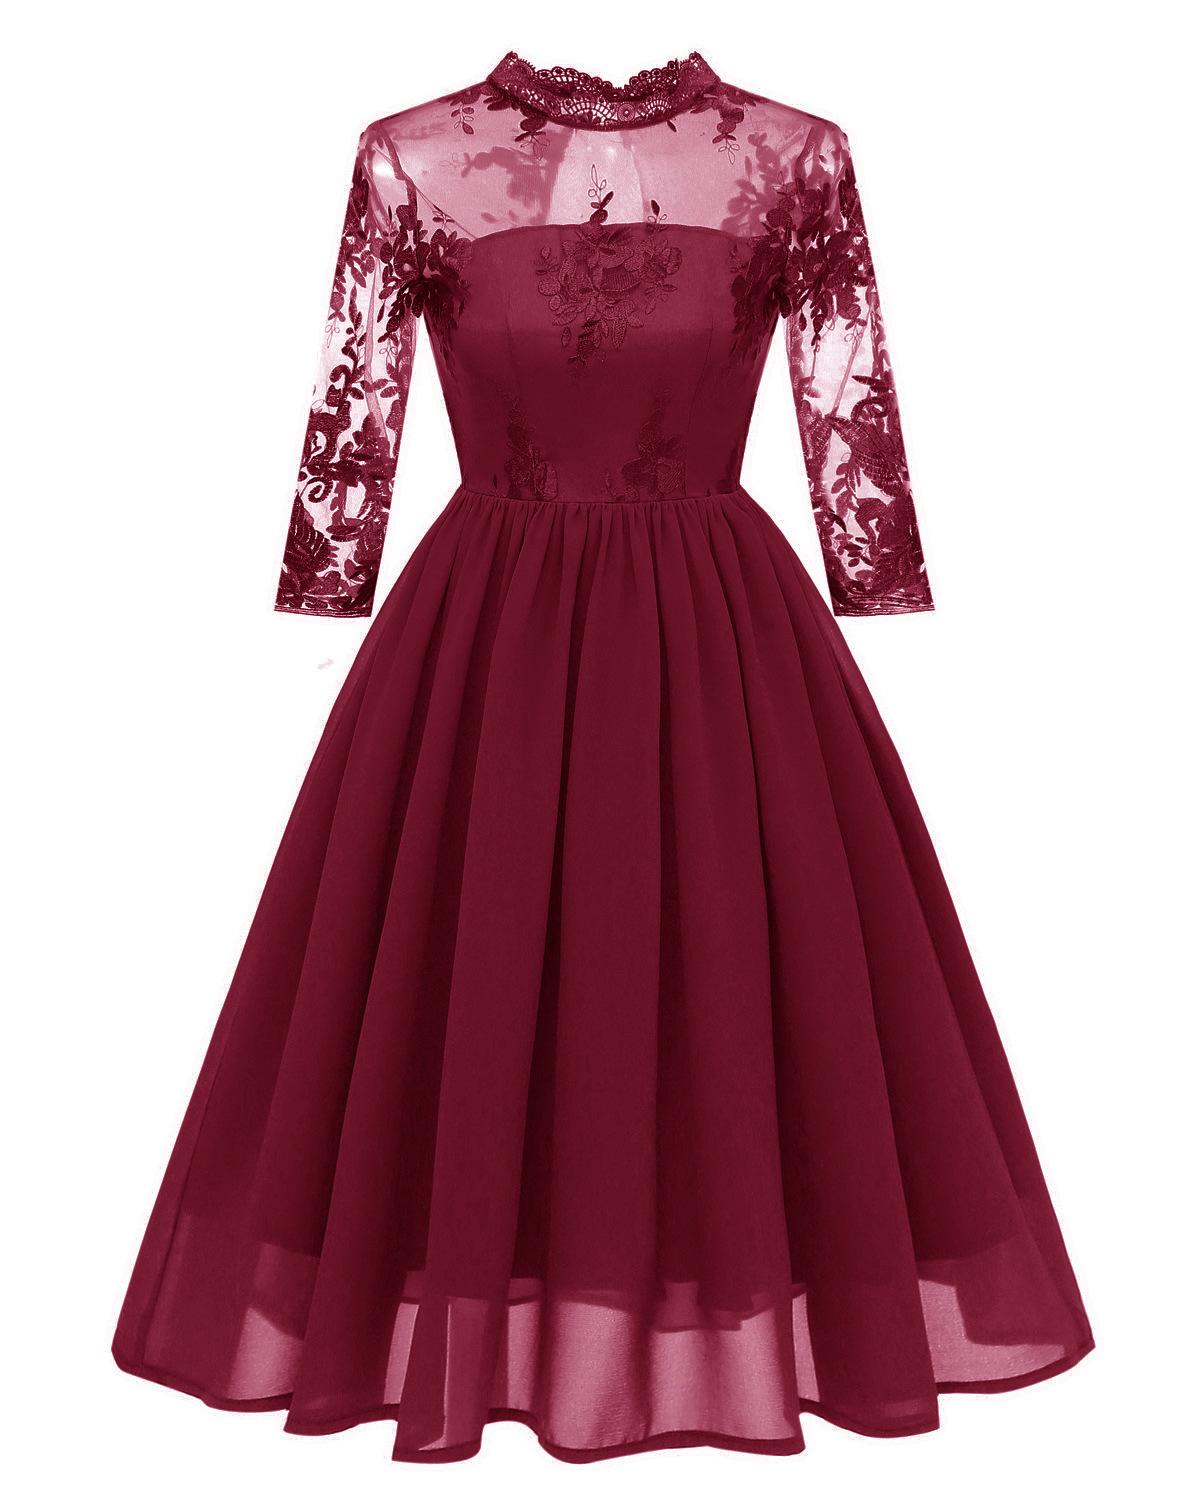 High Neck Long Sleeve Burgundy Navy Embroidery   Cocktail     Dresses   Robe Chiffon Elegant Party 2019 Short Vestidos Homecoming   Dress